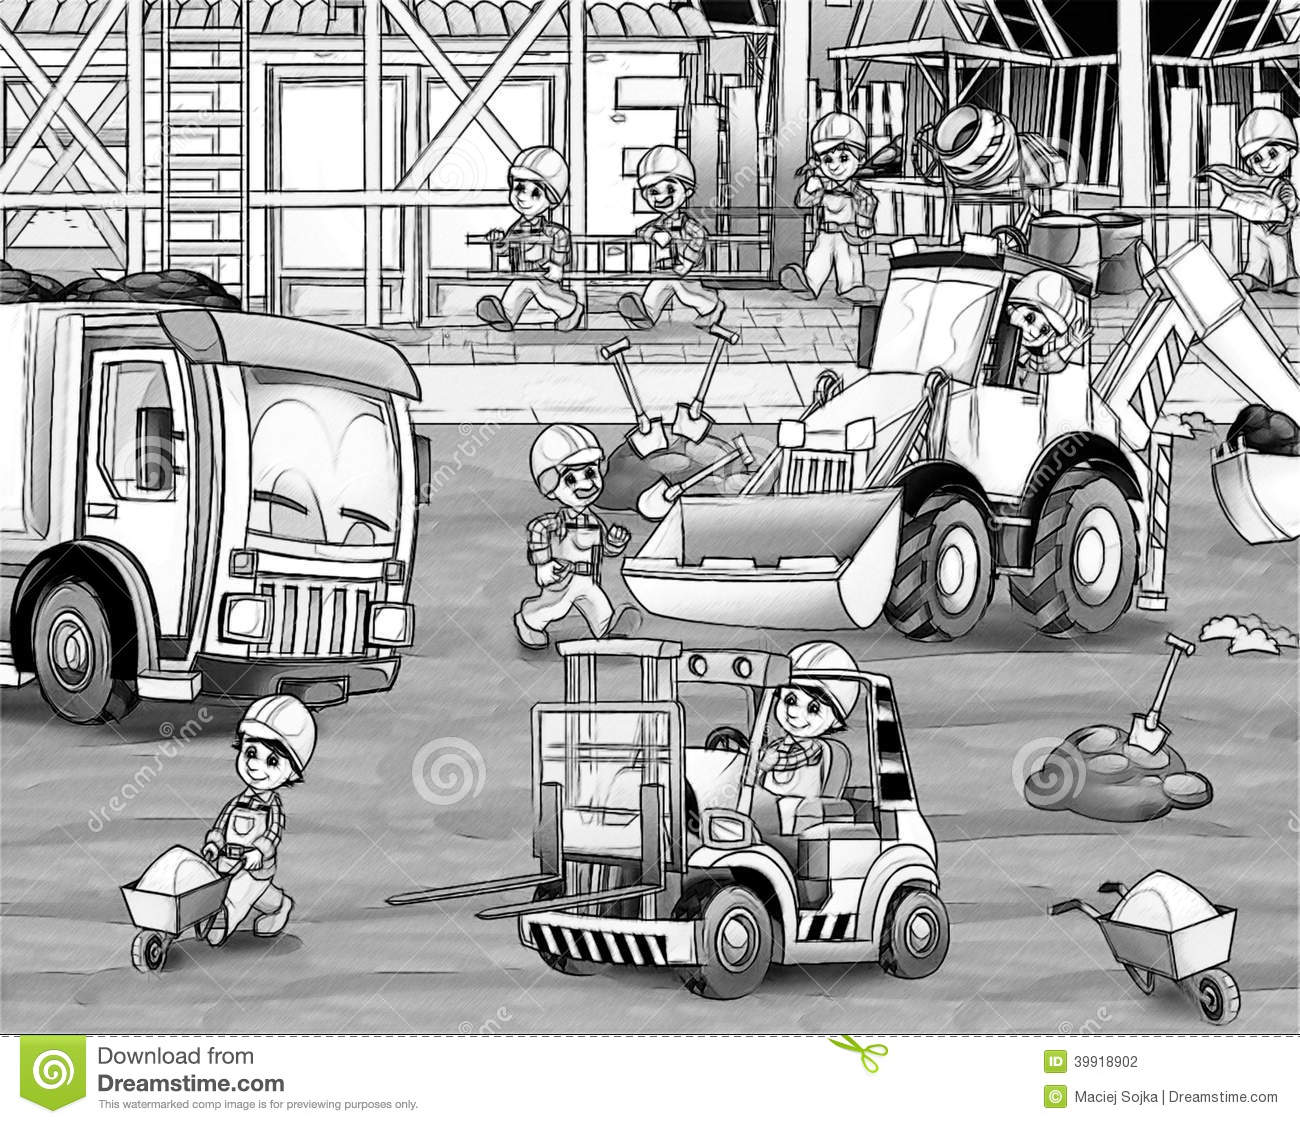 construction site coloring page stock illustration image 39918902